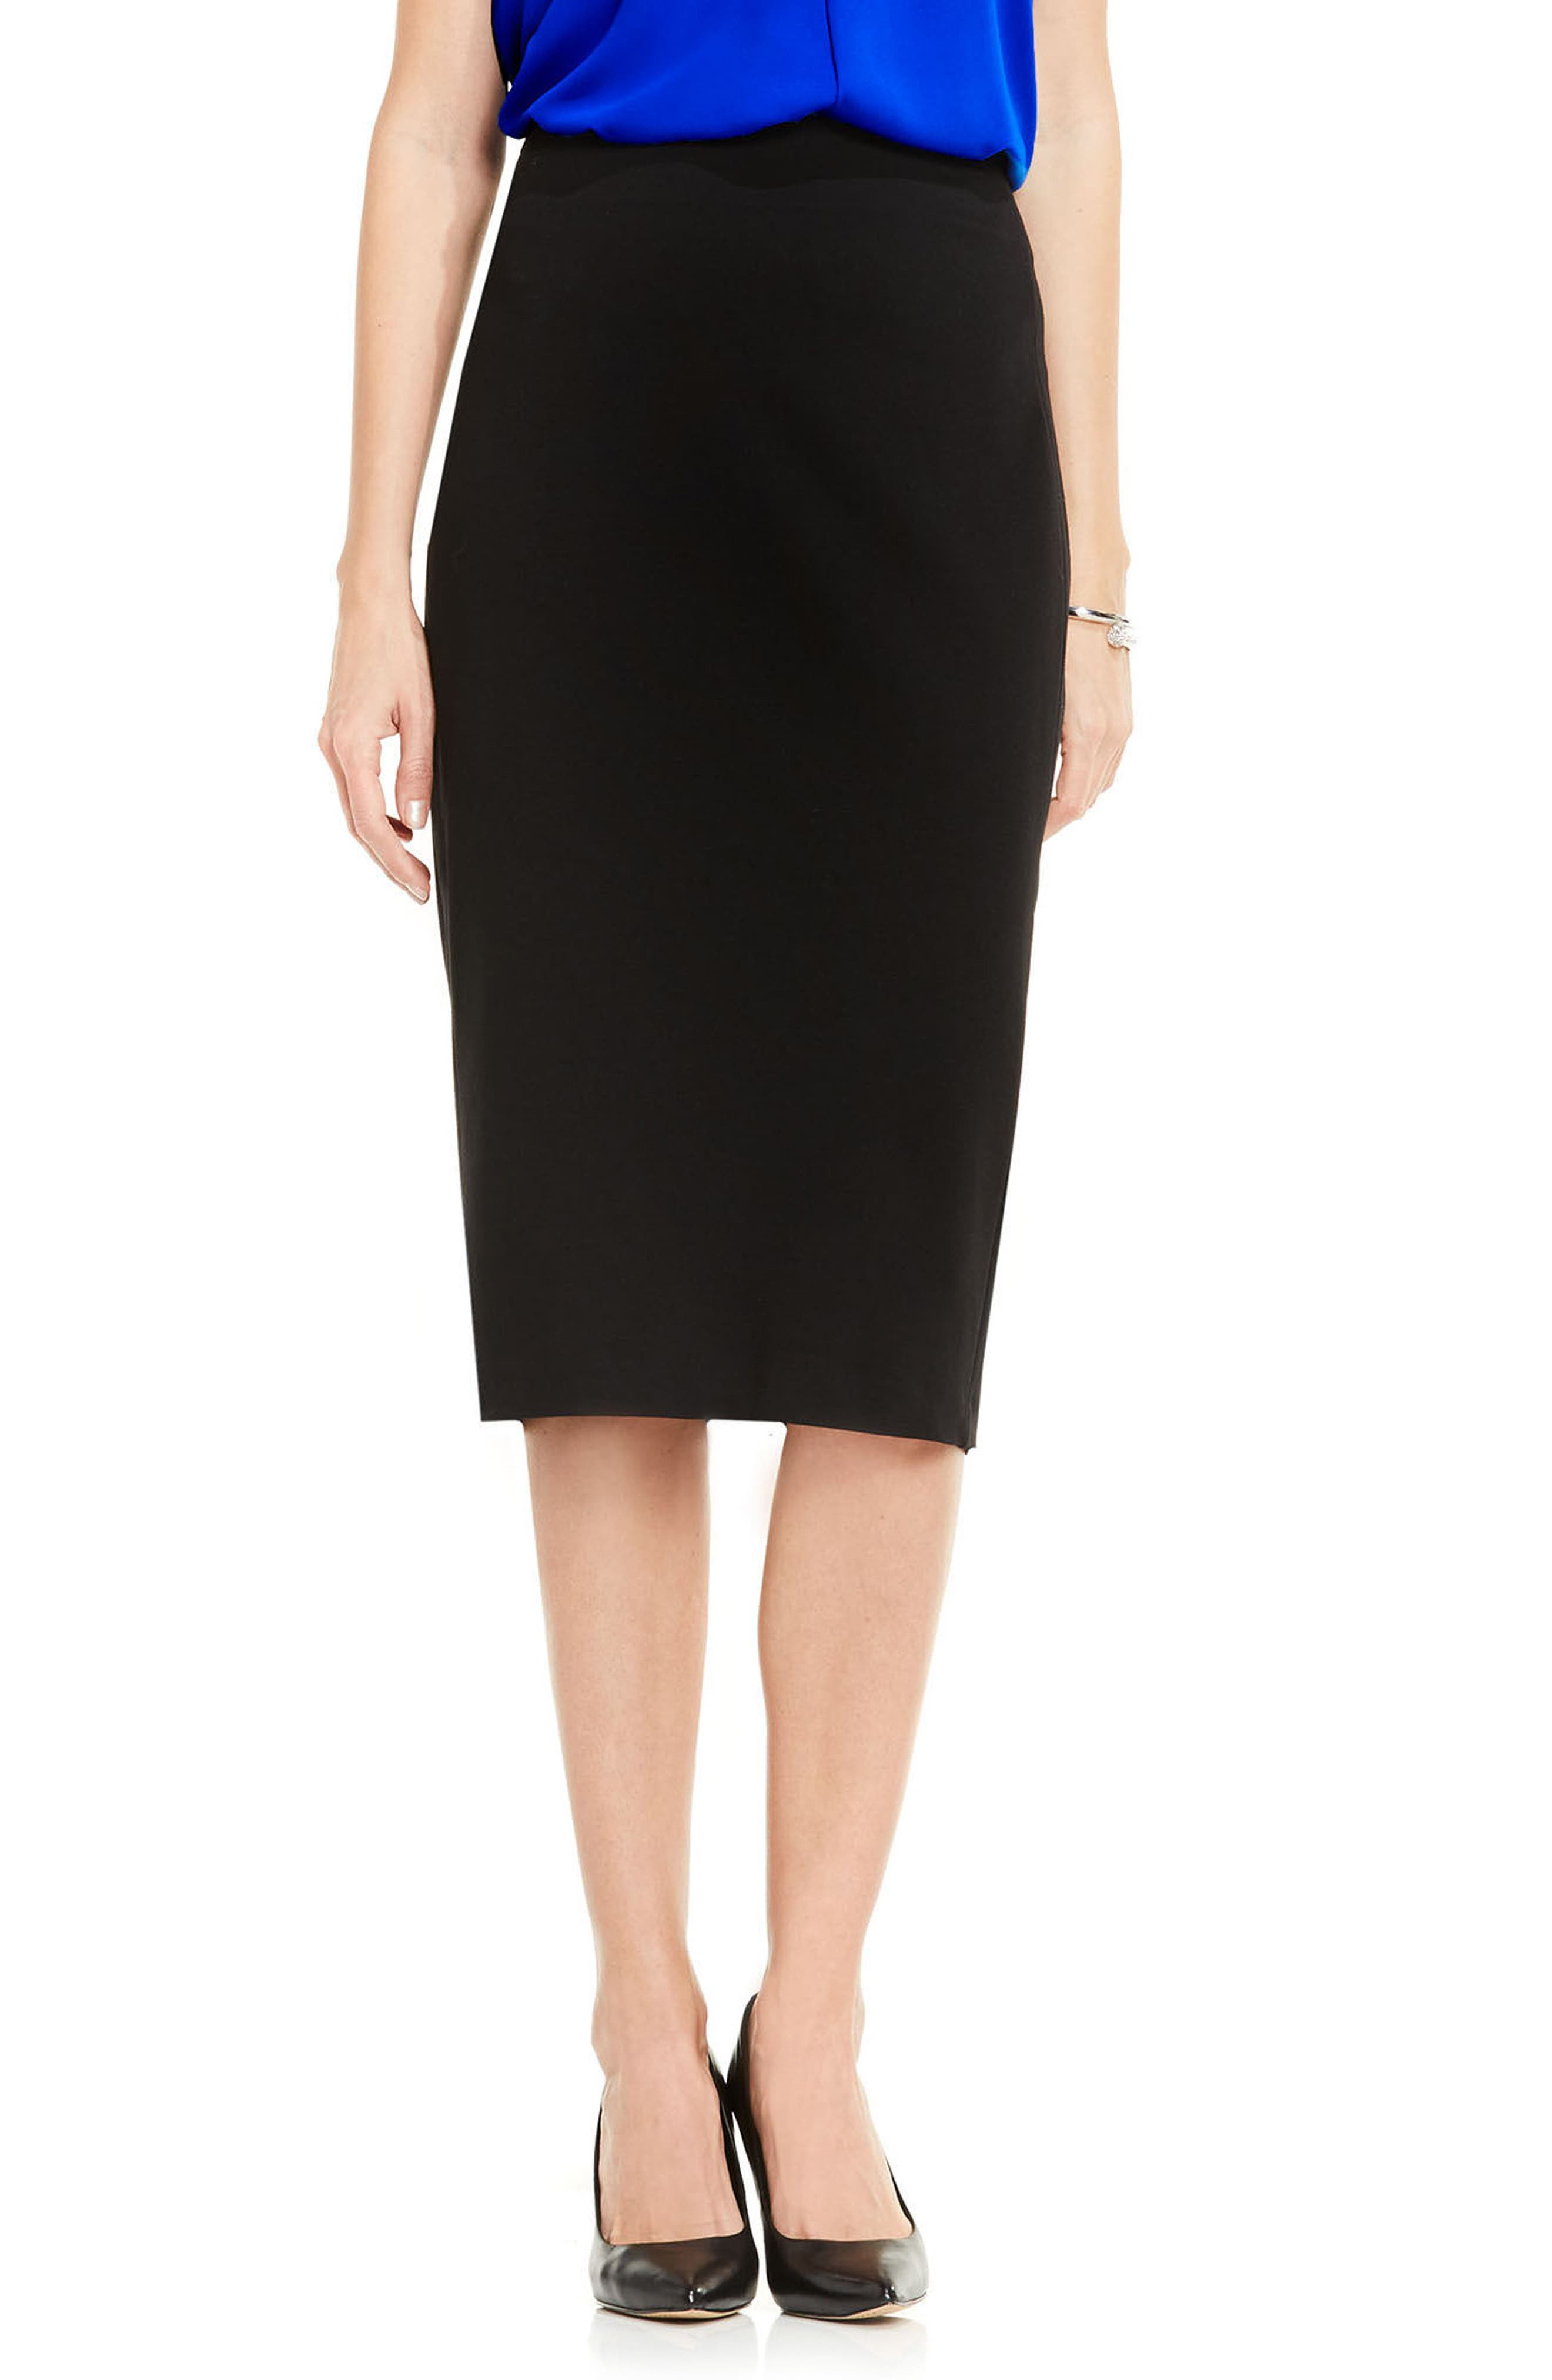 Petite Pull-On Pencil Skirt VINCE CAMUTO $69 (Nordstrom)